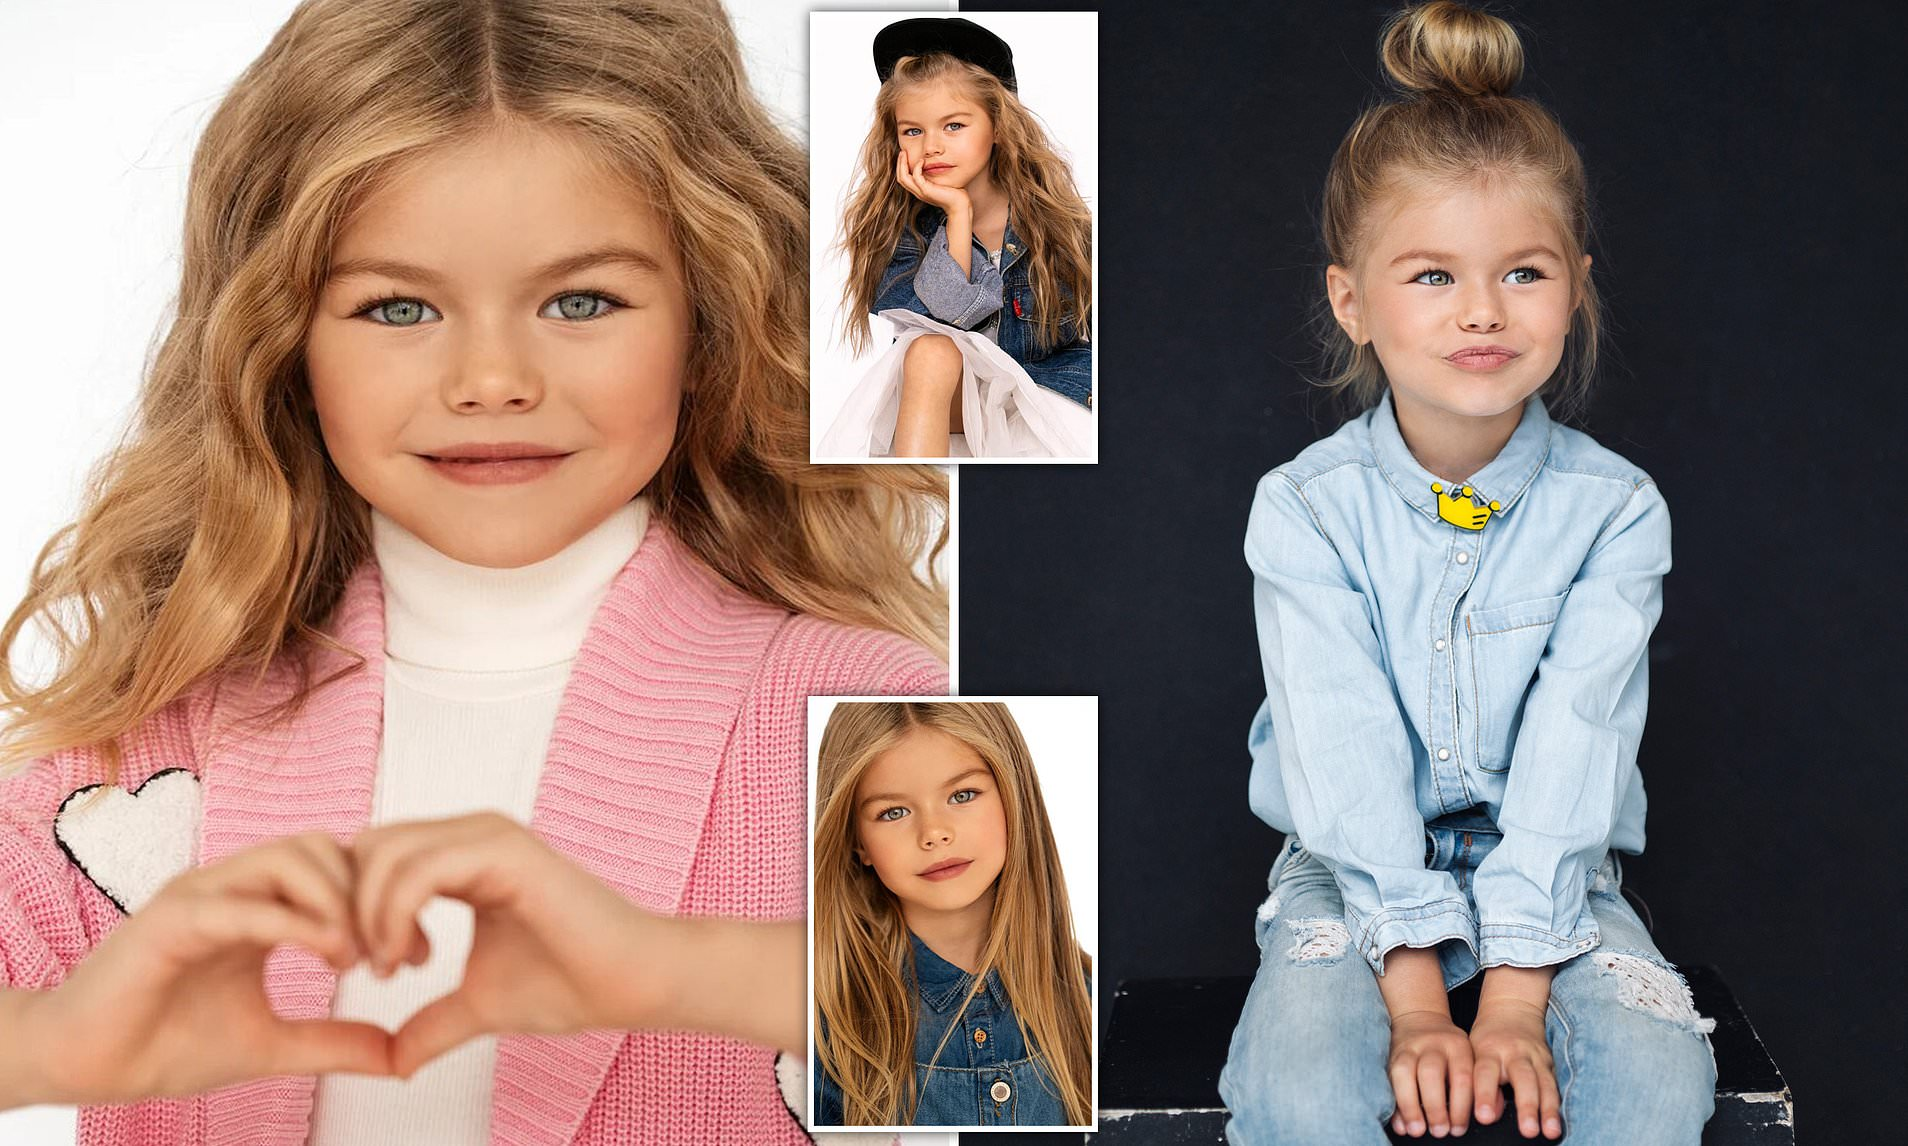 Baby Model Berlin Young Model Six Has Been Described As The Cutest Girl In